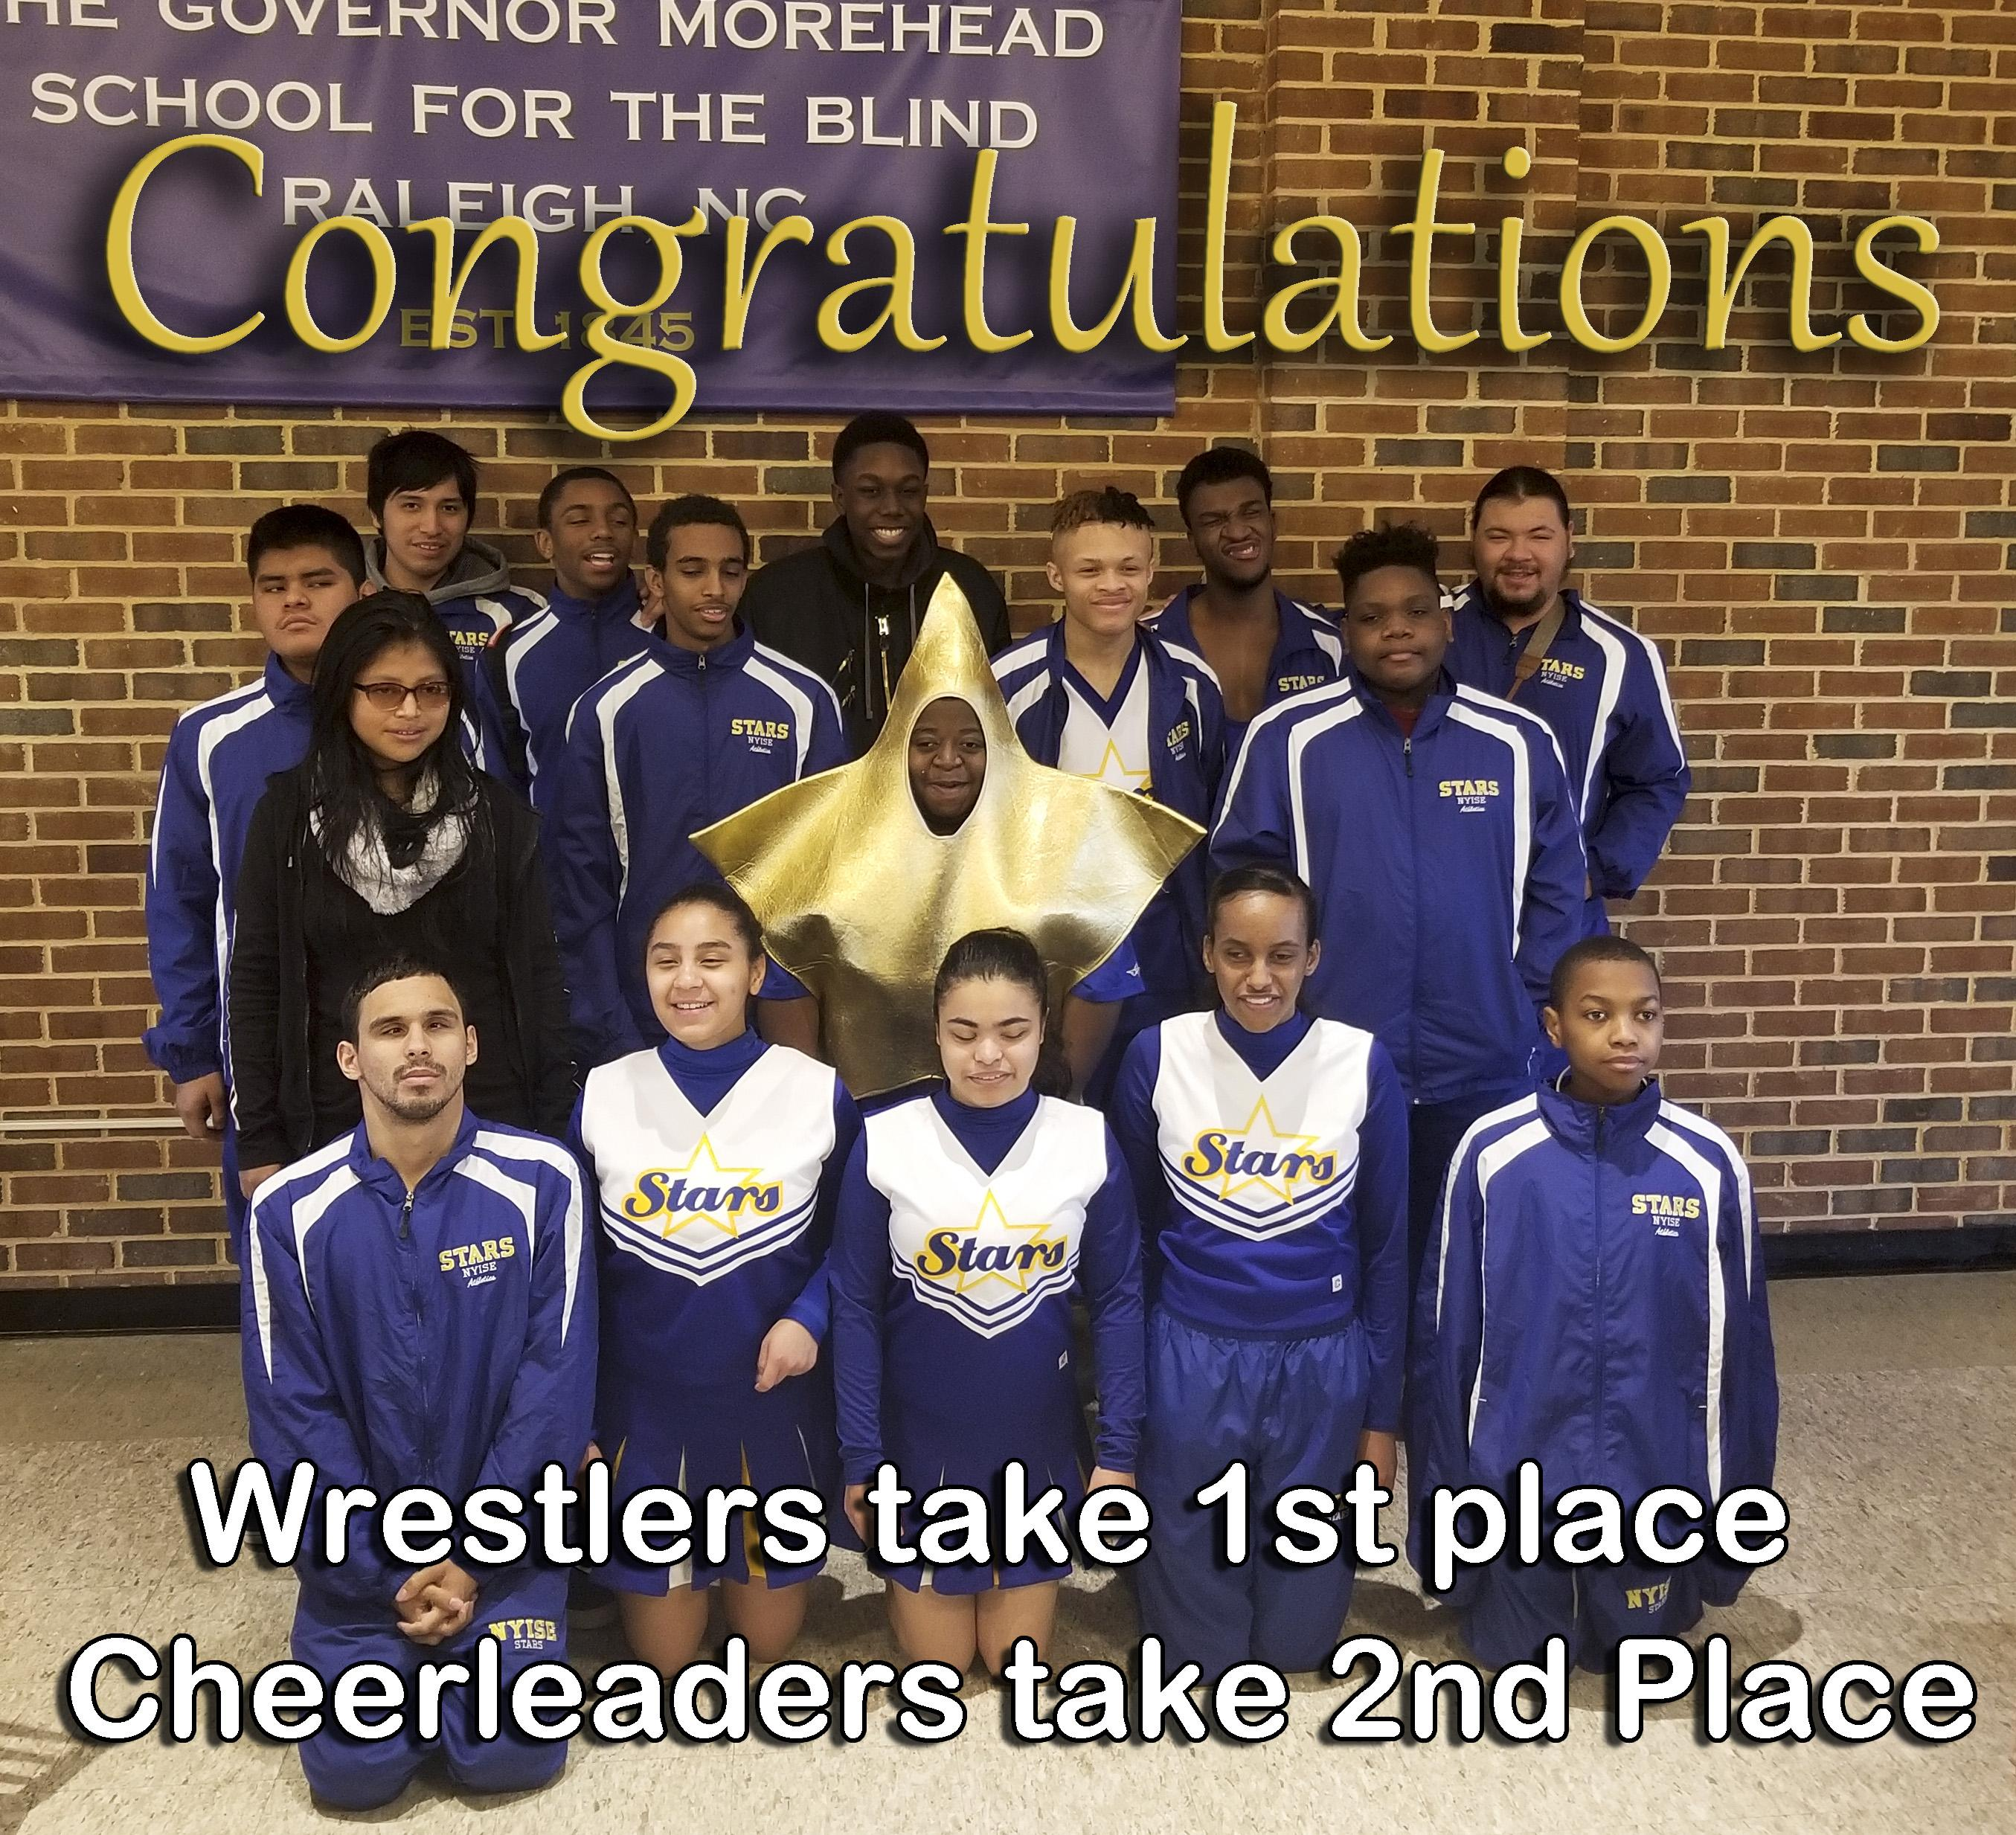 Congratulations to the wrestling and cheerleading teams.